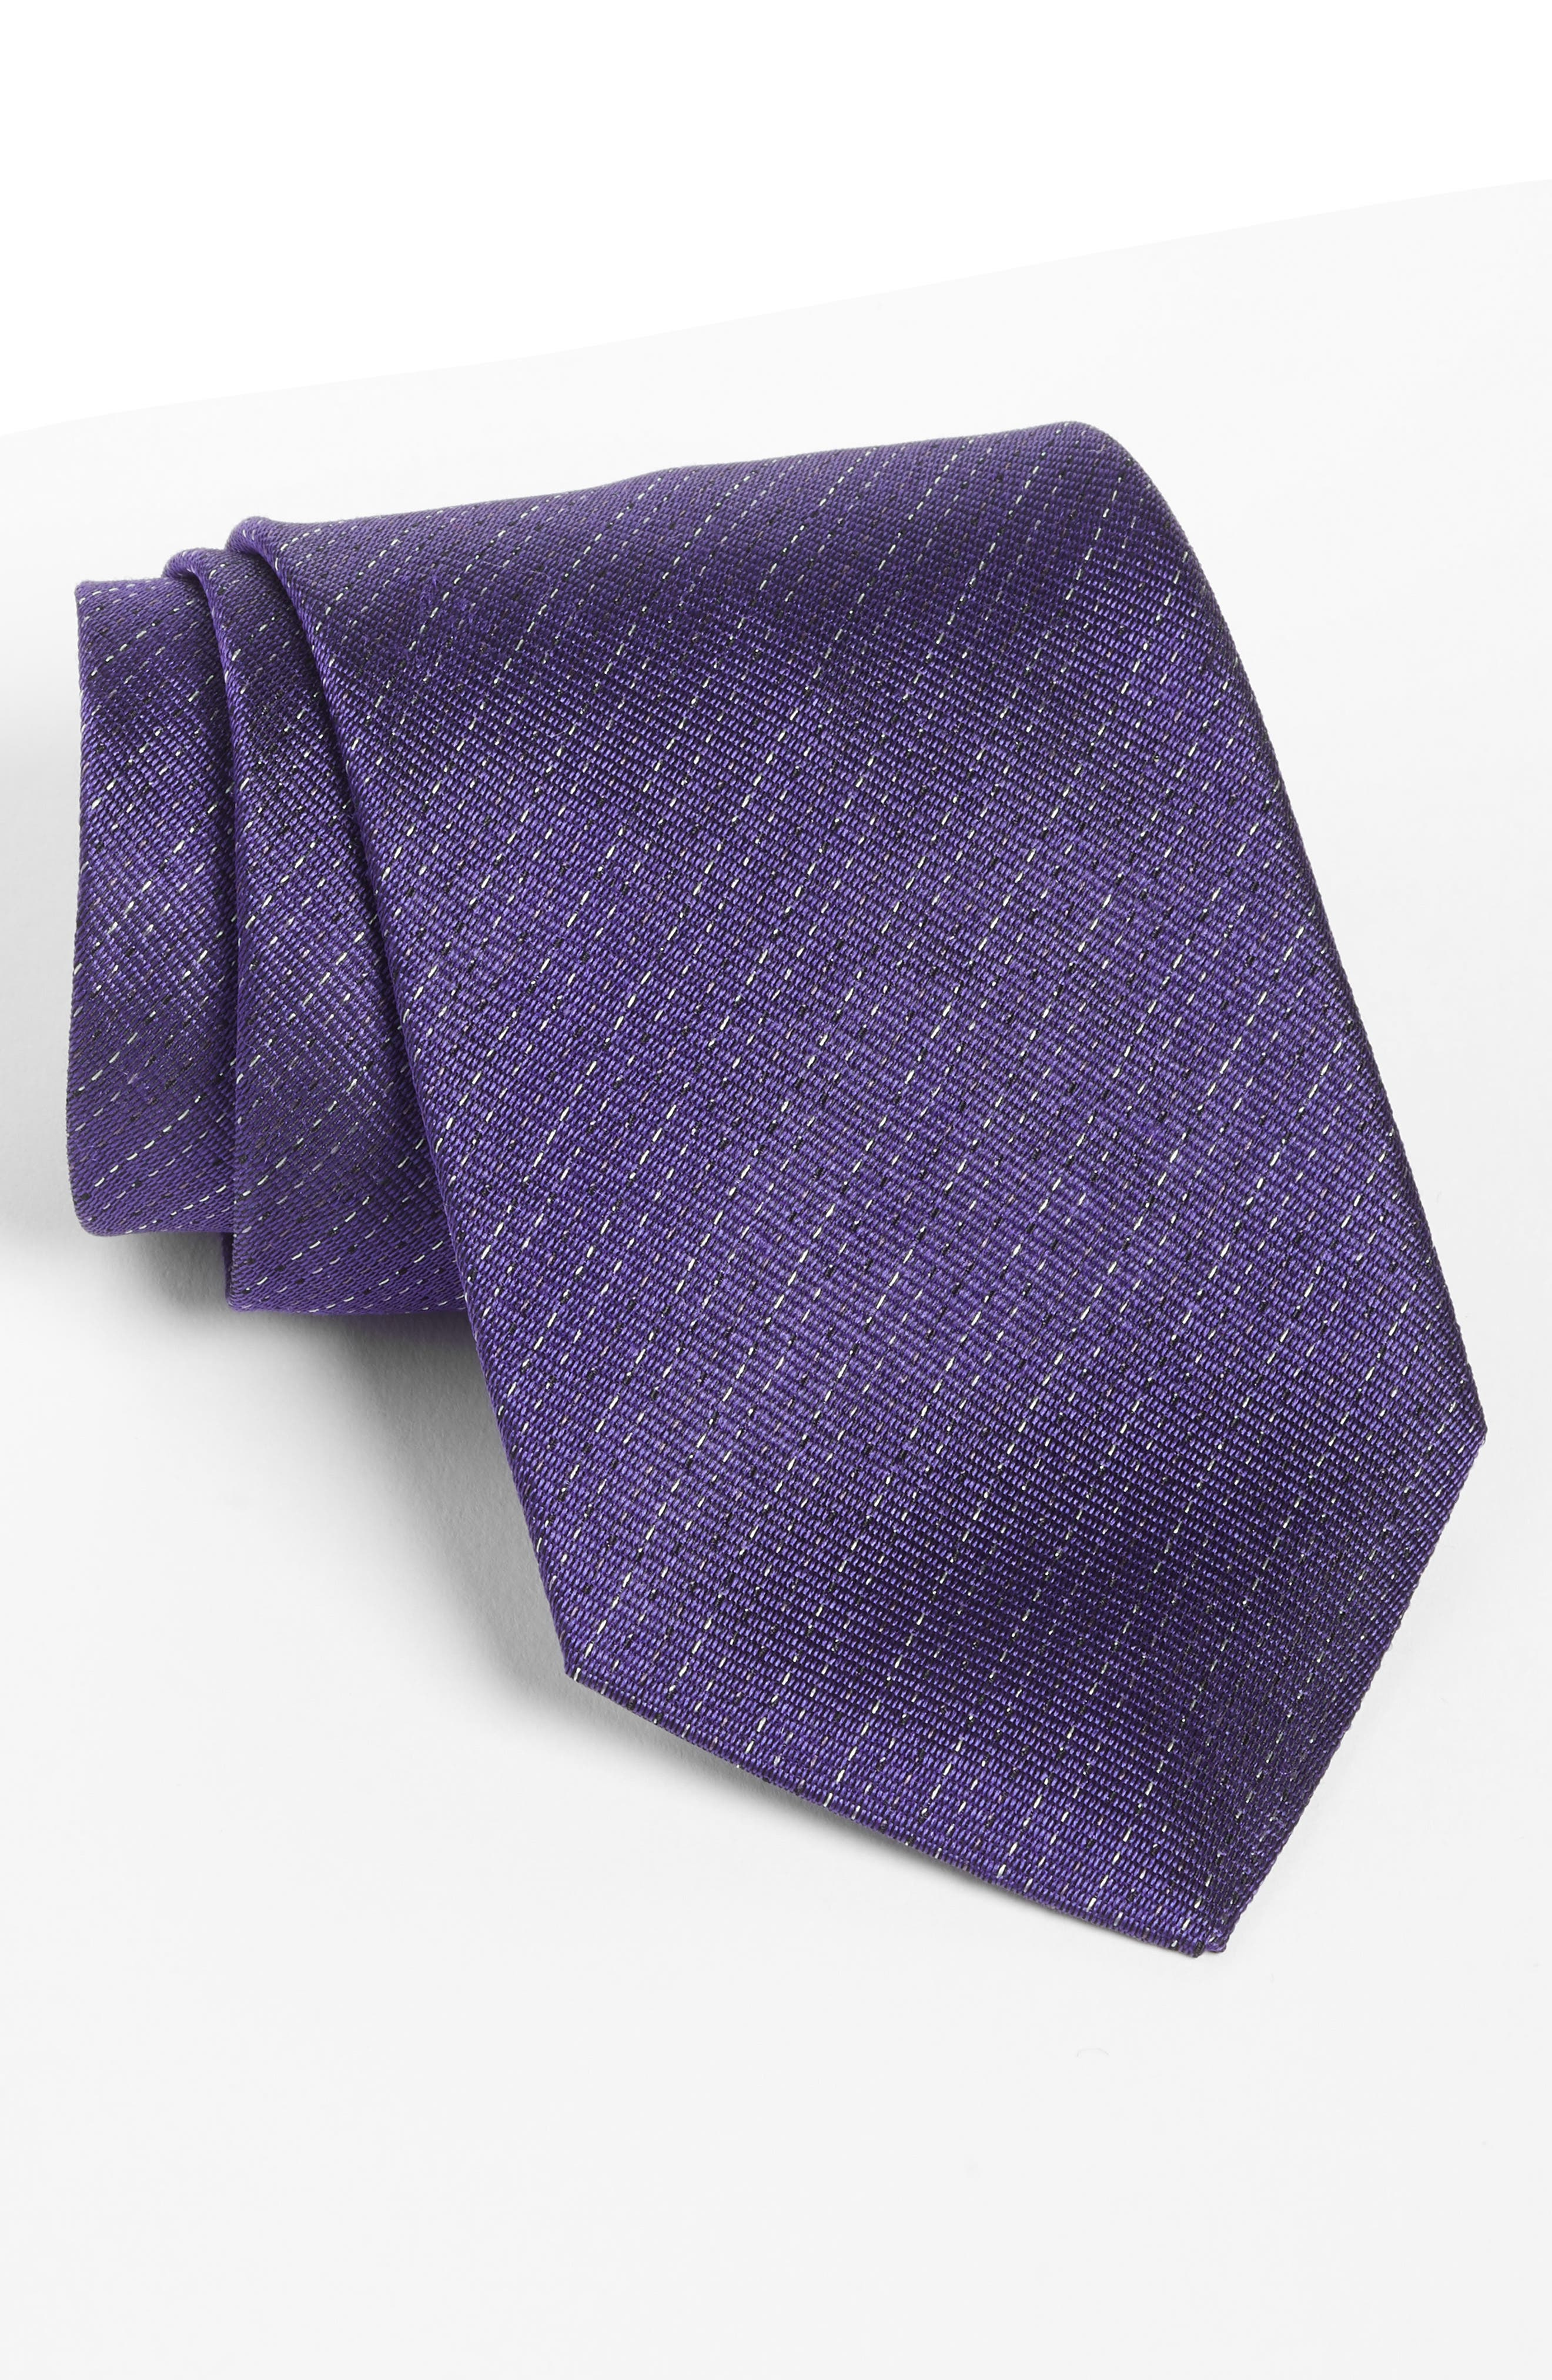 Stripe Silk Tie,                             Main thumbnail 1, color,                             Purple